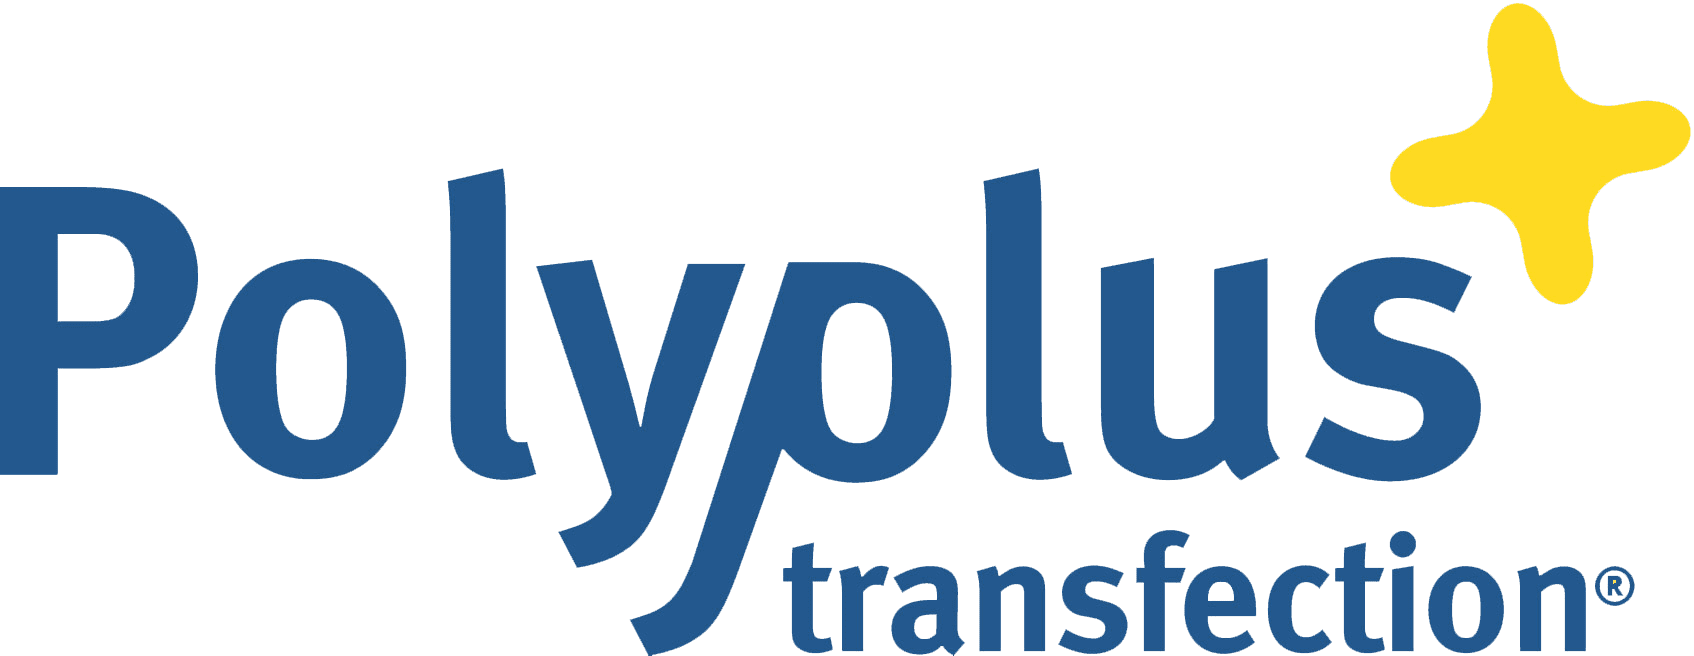 Logo Polyplus-transfection PNG